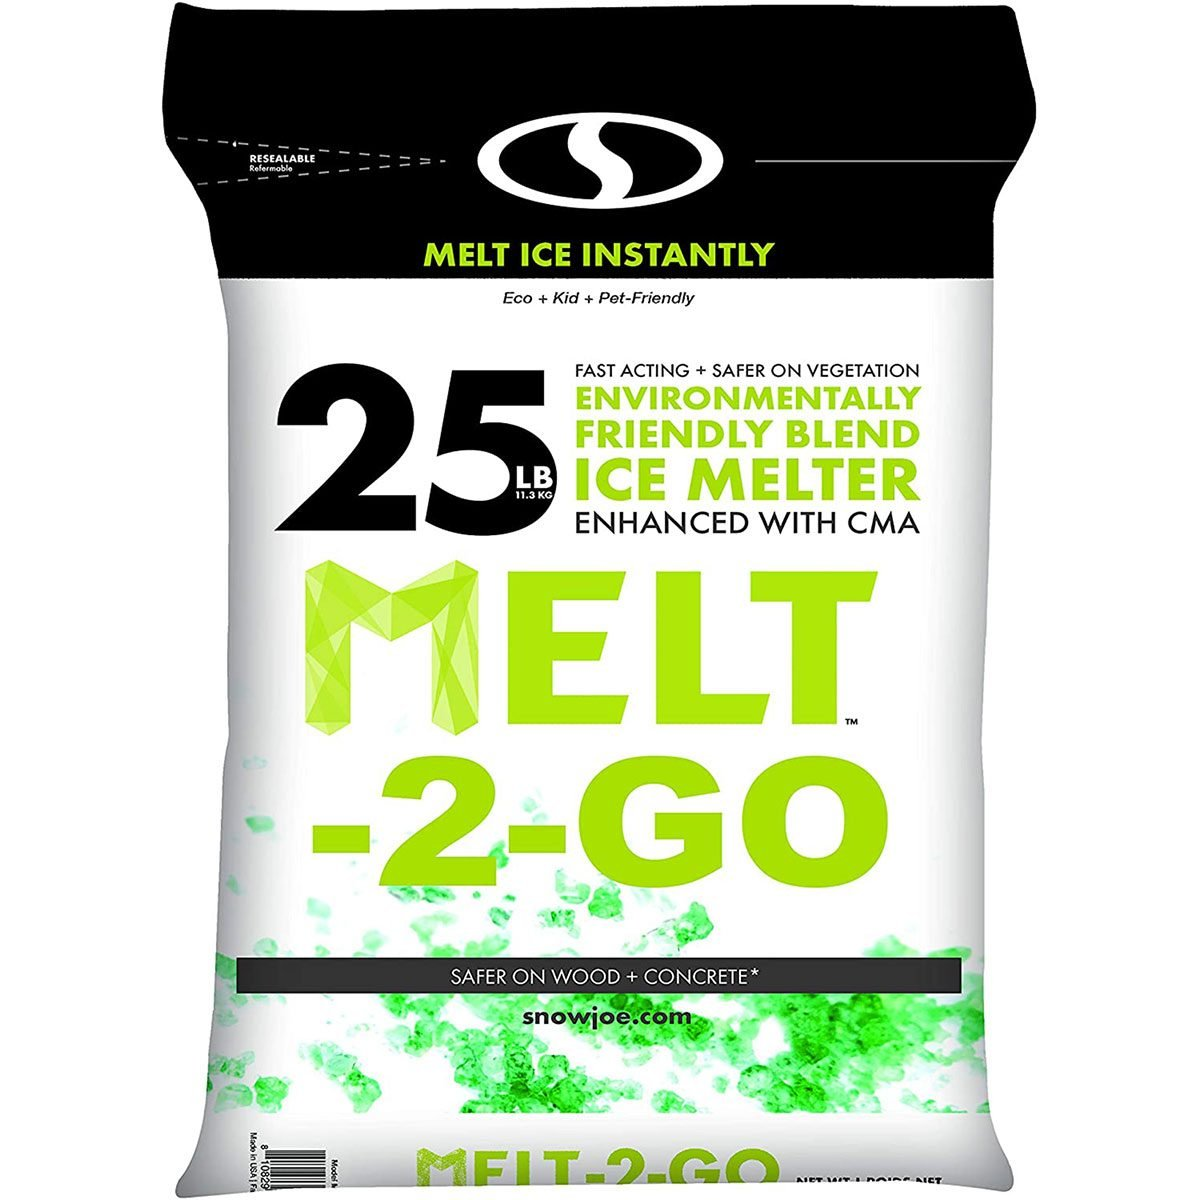 melt-2-go enhanced with cma